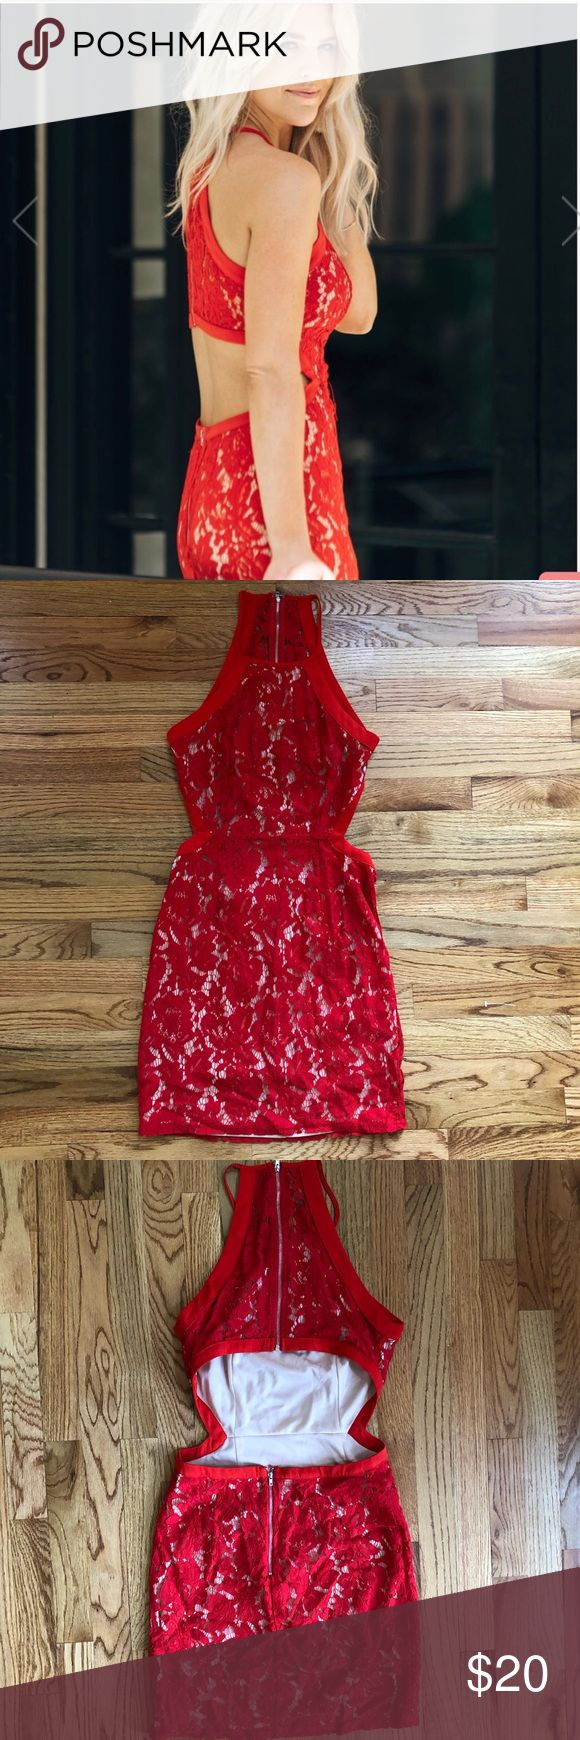 Red valentines dress vday date 😍 Red lace dress